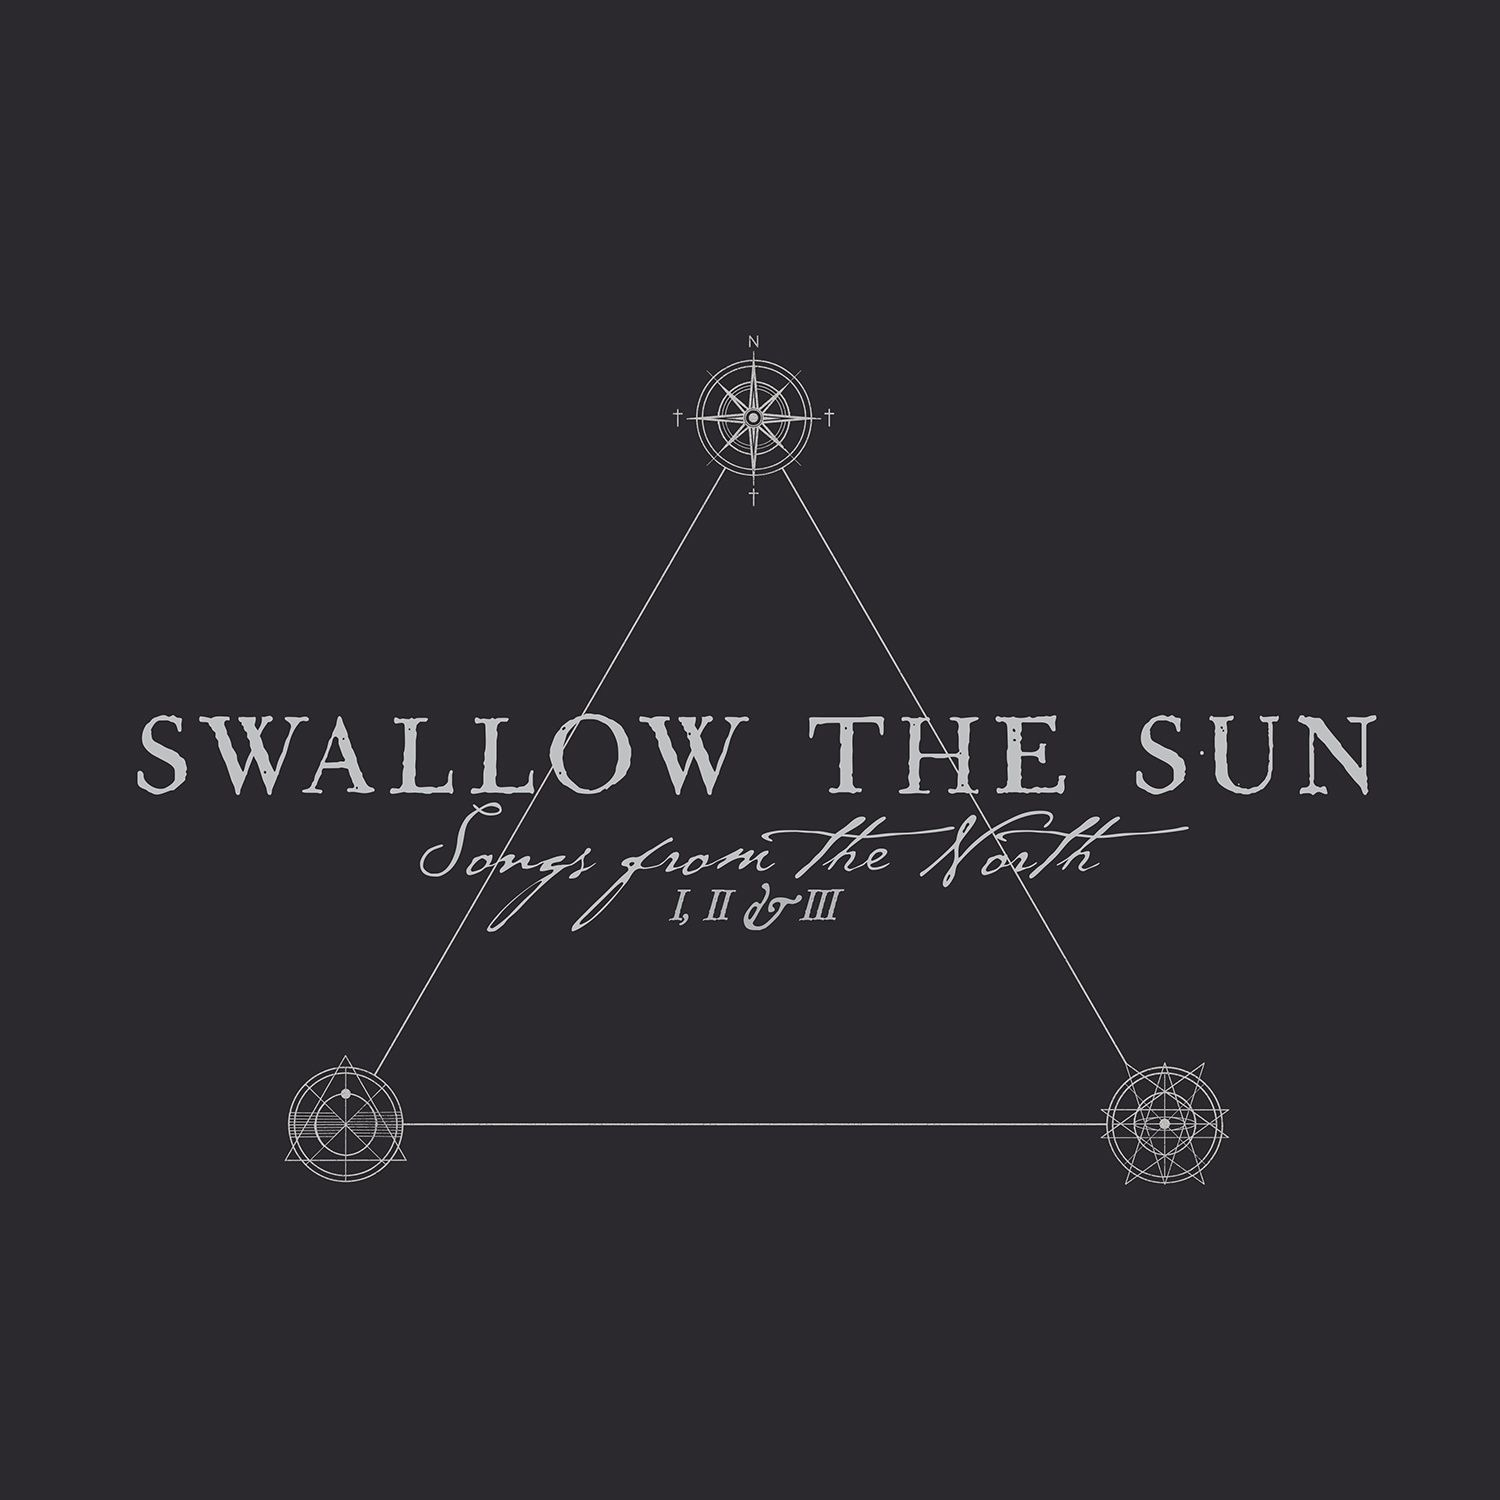 CD review SWALLOW THE SUN &quot&#x3B;Songs from the North I, II &amp&#x3B; III&quot&#x3B;